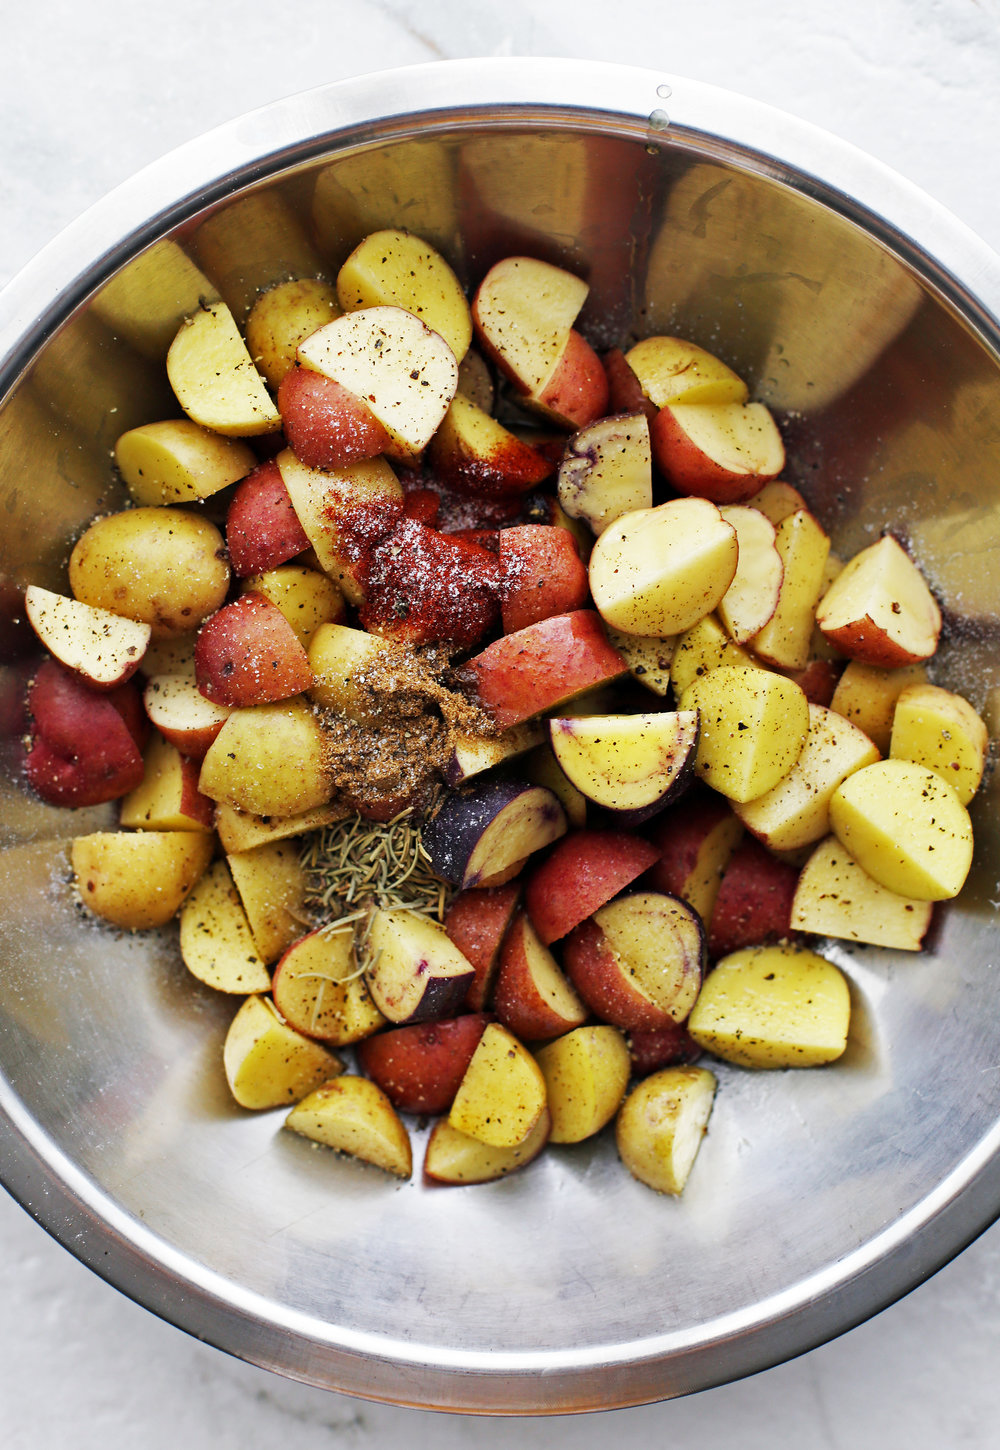 Quartered baby potatoes, olive oil, spices, and dried rosemary in a metal bowl.